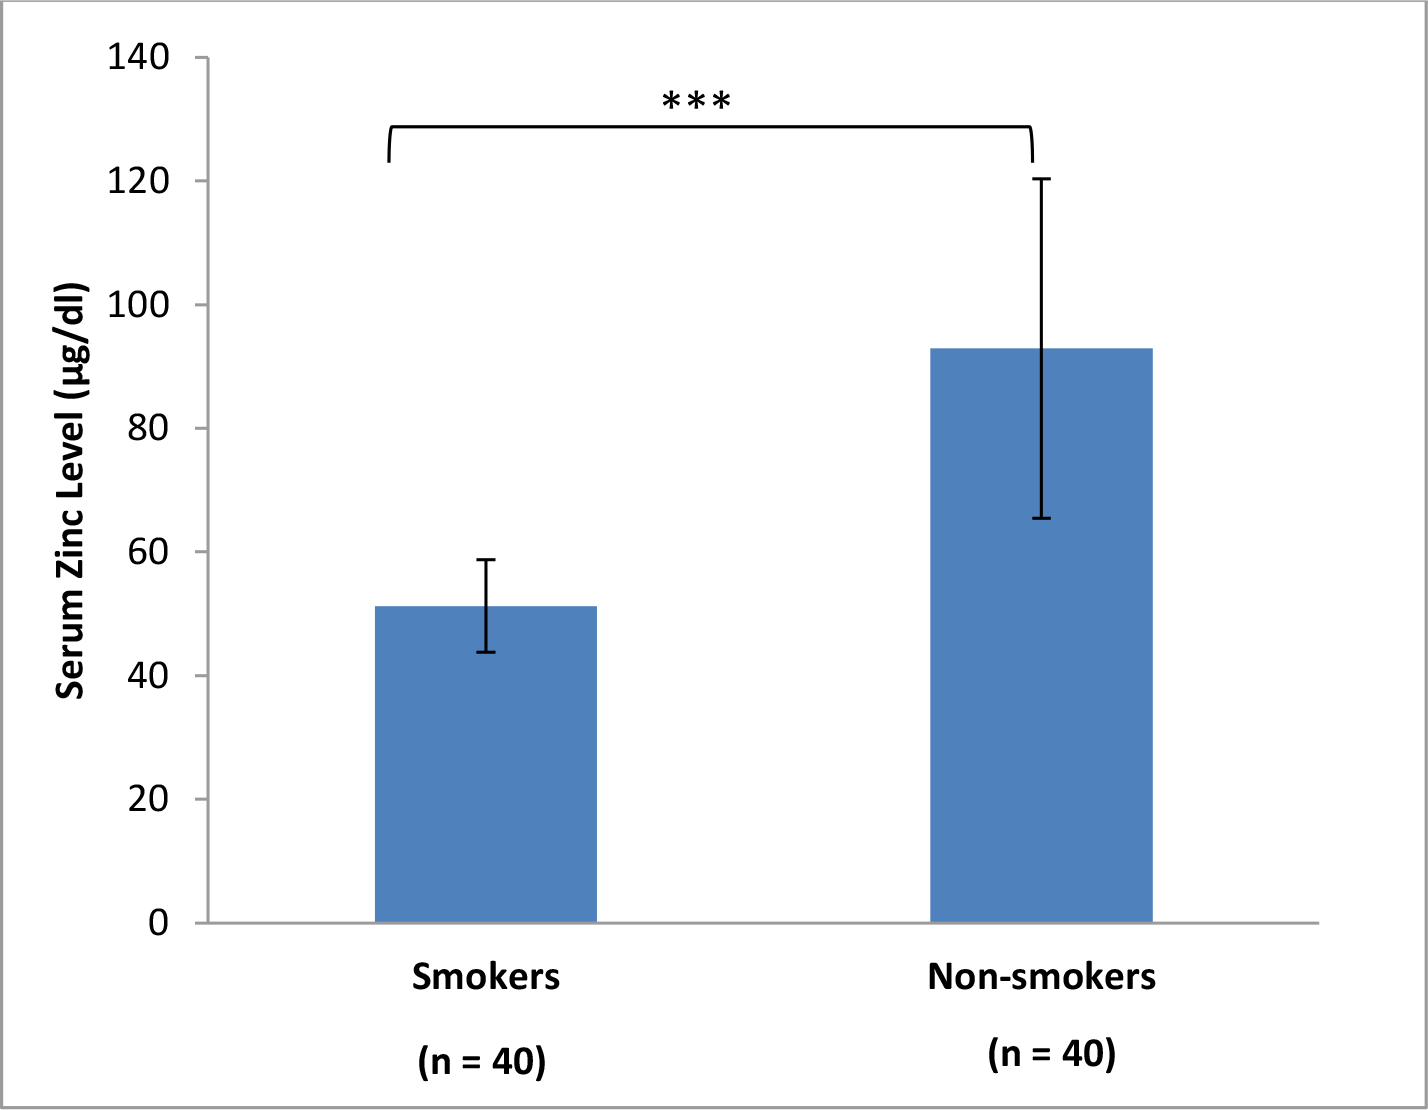 Comparison of serum zinc level in smokers and non-smokers.